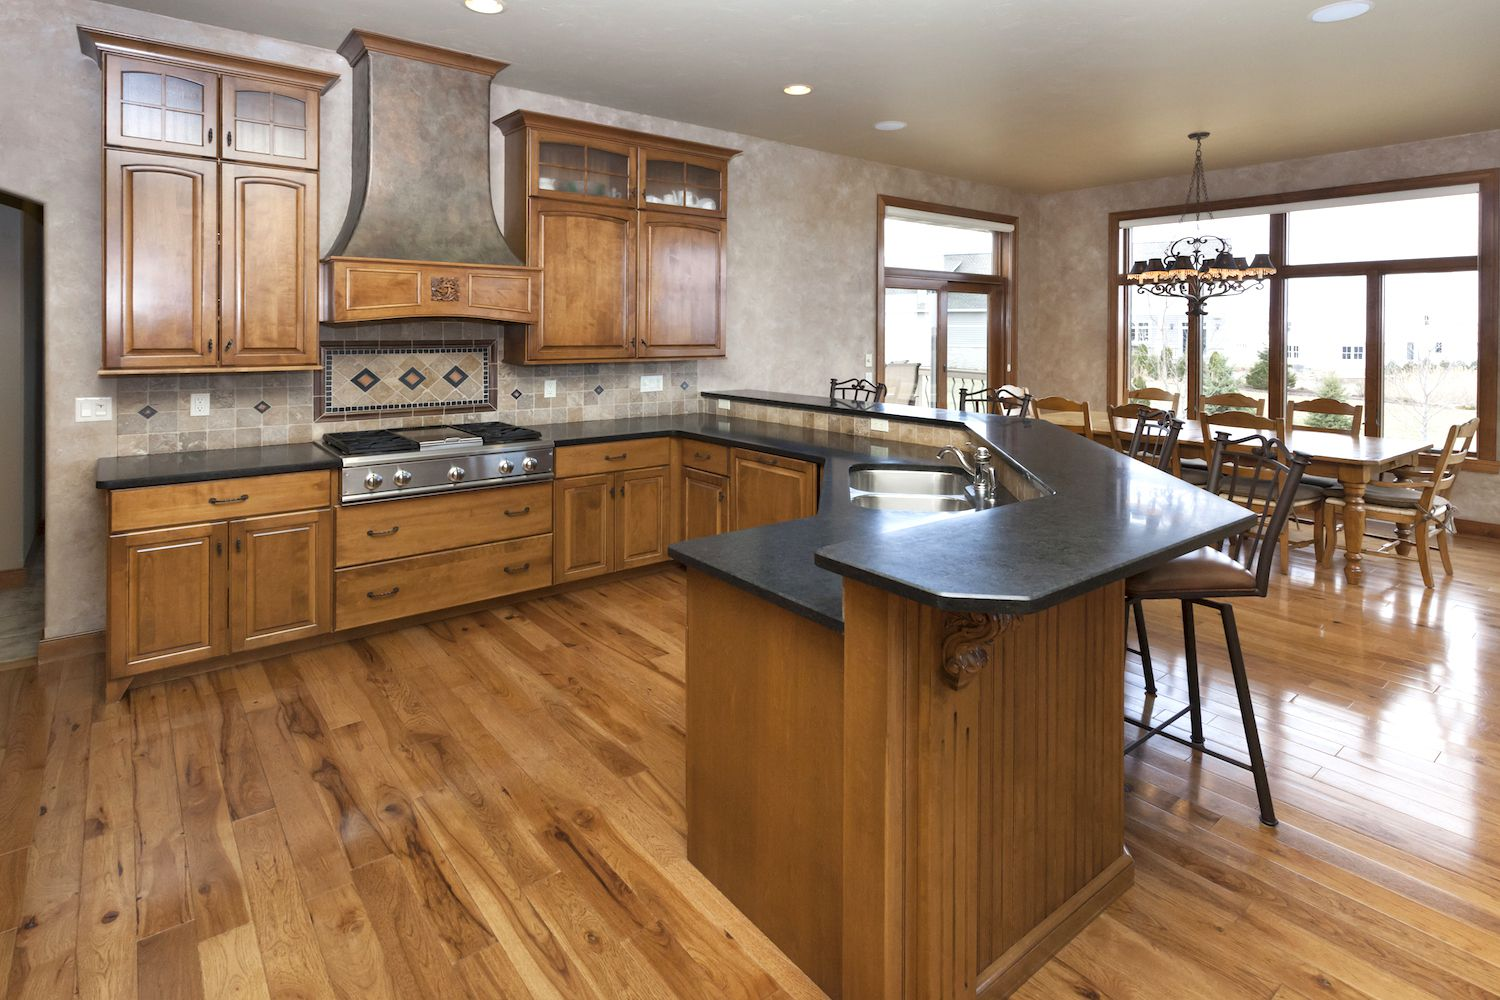 services eau in wi granite countertop countertops claire kitchen dream trendstone